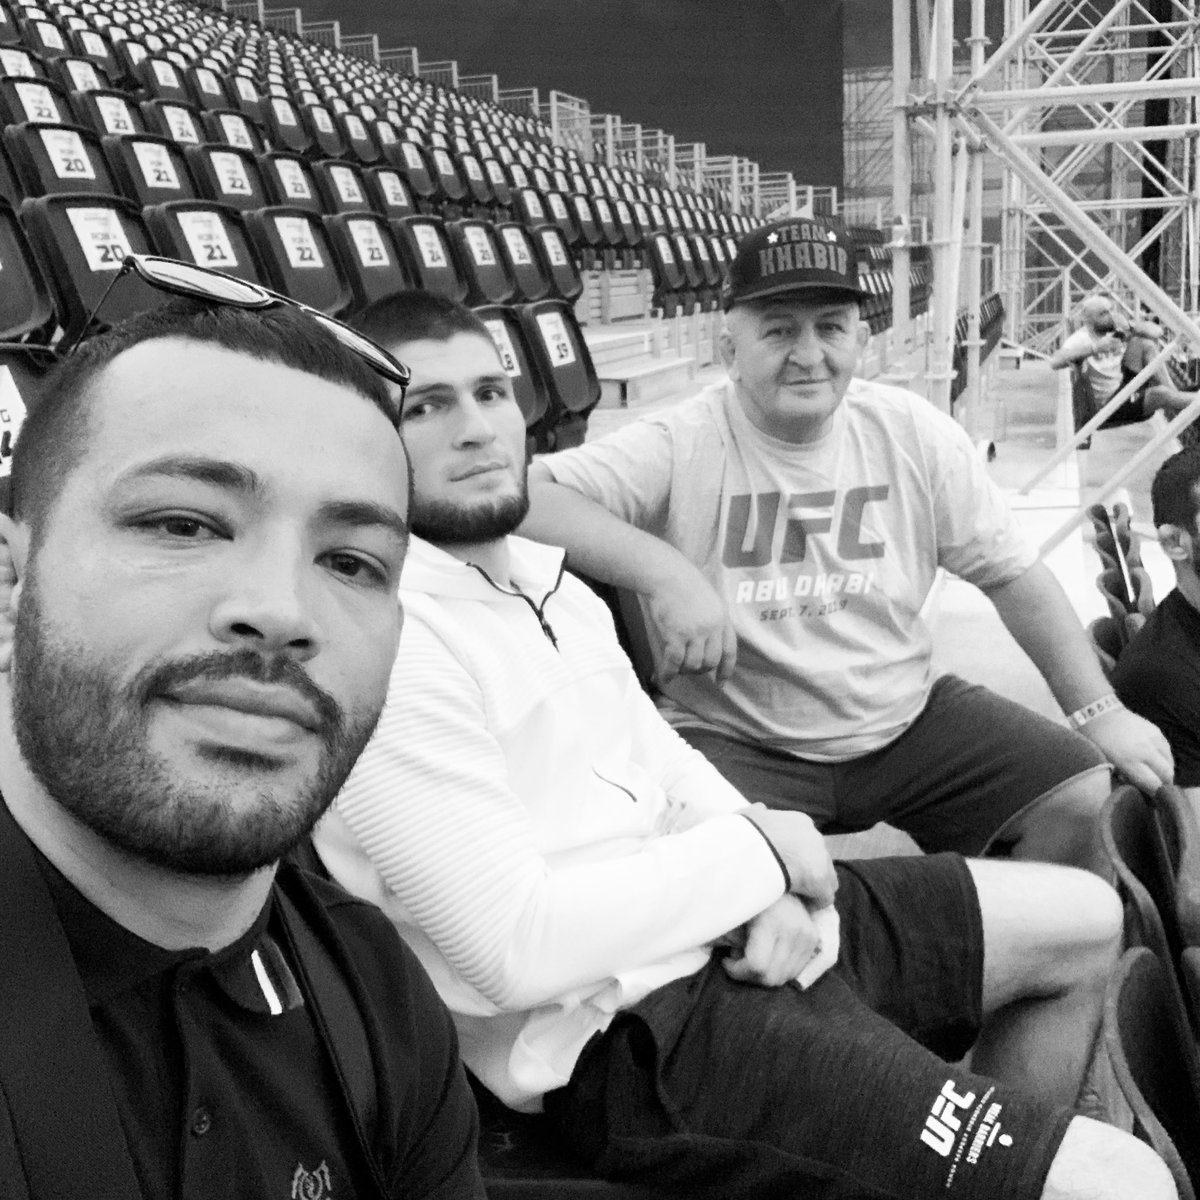 My heart is incredibly saddened by the news this morning of the passing of Abdulmanap Nurmagomedov. The bond Khabib and his father had was unconditional. Now he is resting peacefully in heaven with the almighty. May god be with you and your family @TeamKhabib https://t.co/w7HbT1bjIt